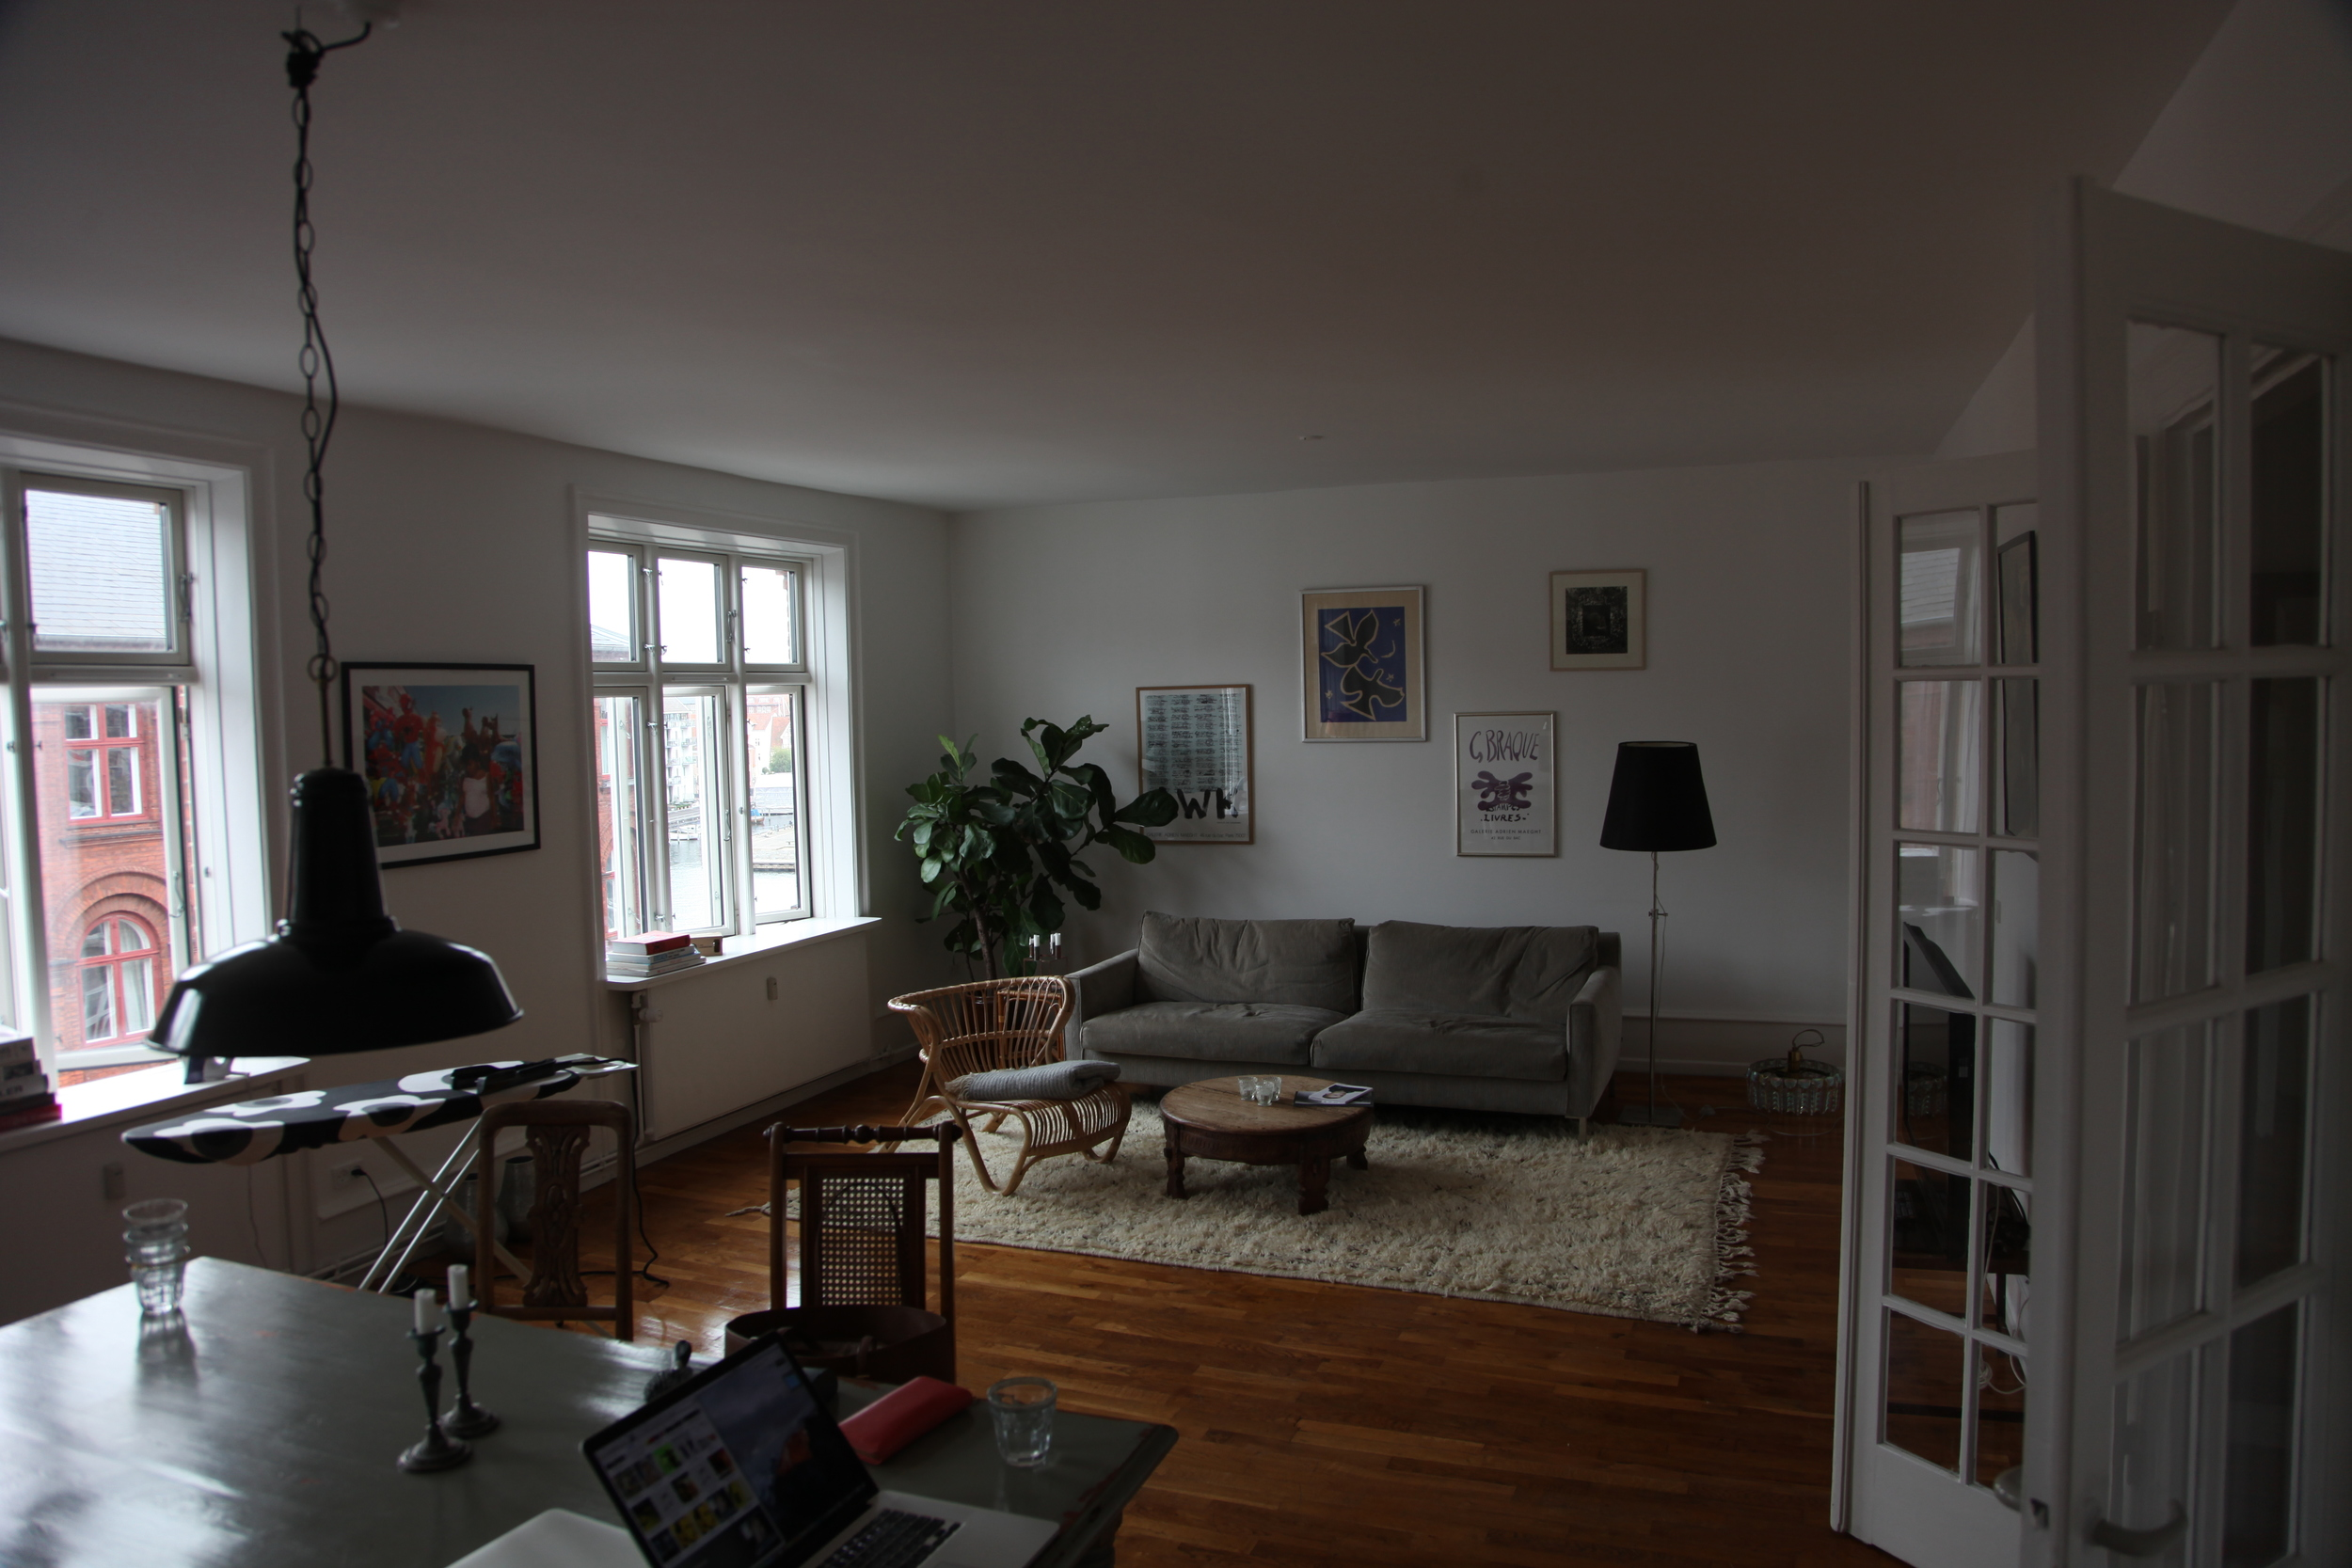 The apartment we got for a steal on AirBnB. (Copenhagen, Denmark.)